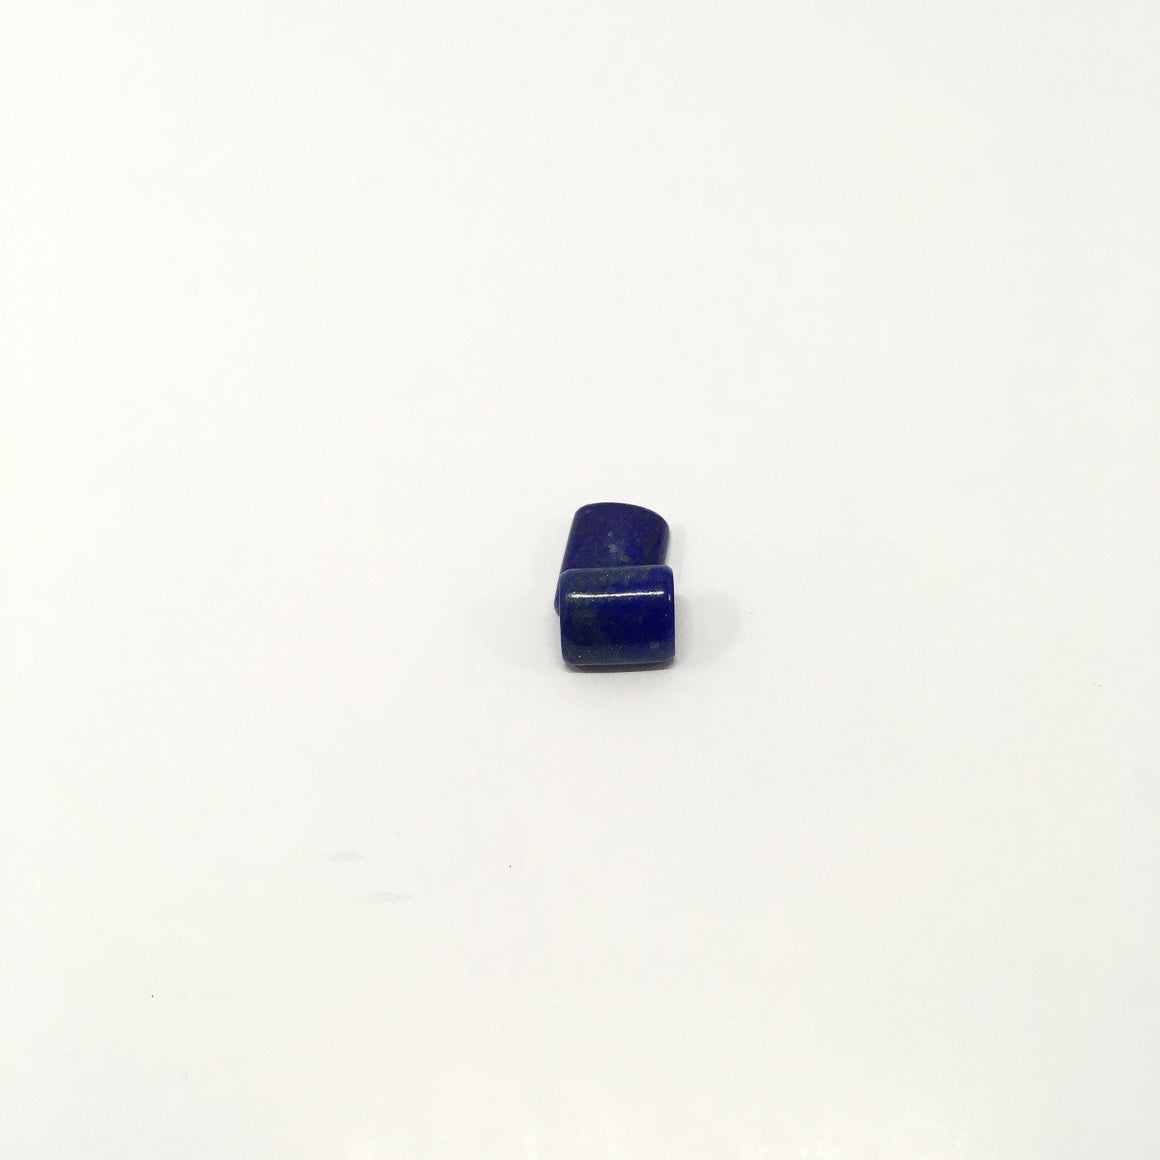 Lapis Lazuli Cabochon - Lapis Cabochon For Ring Emerald Cut - 18.25 ct